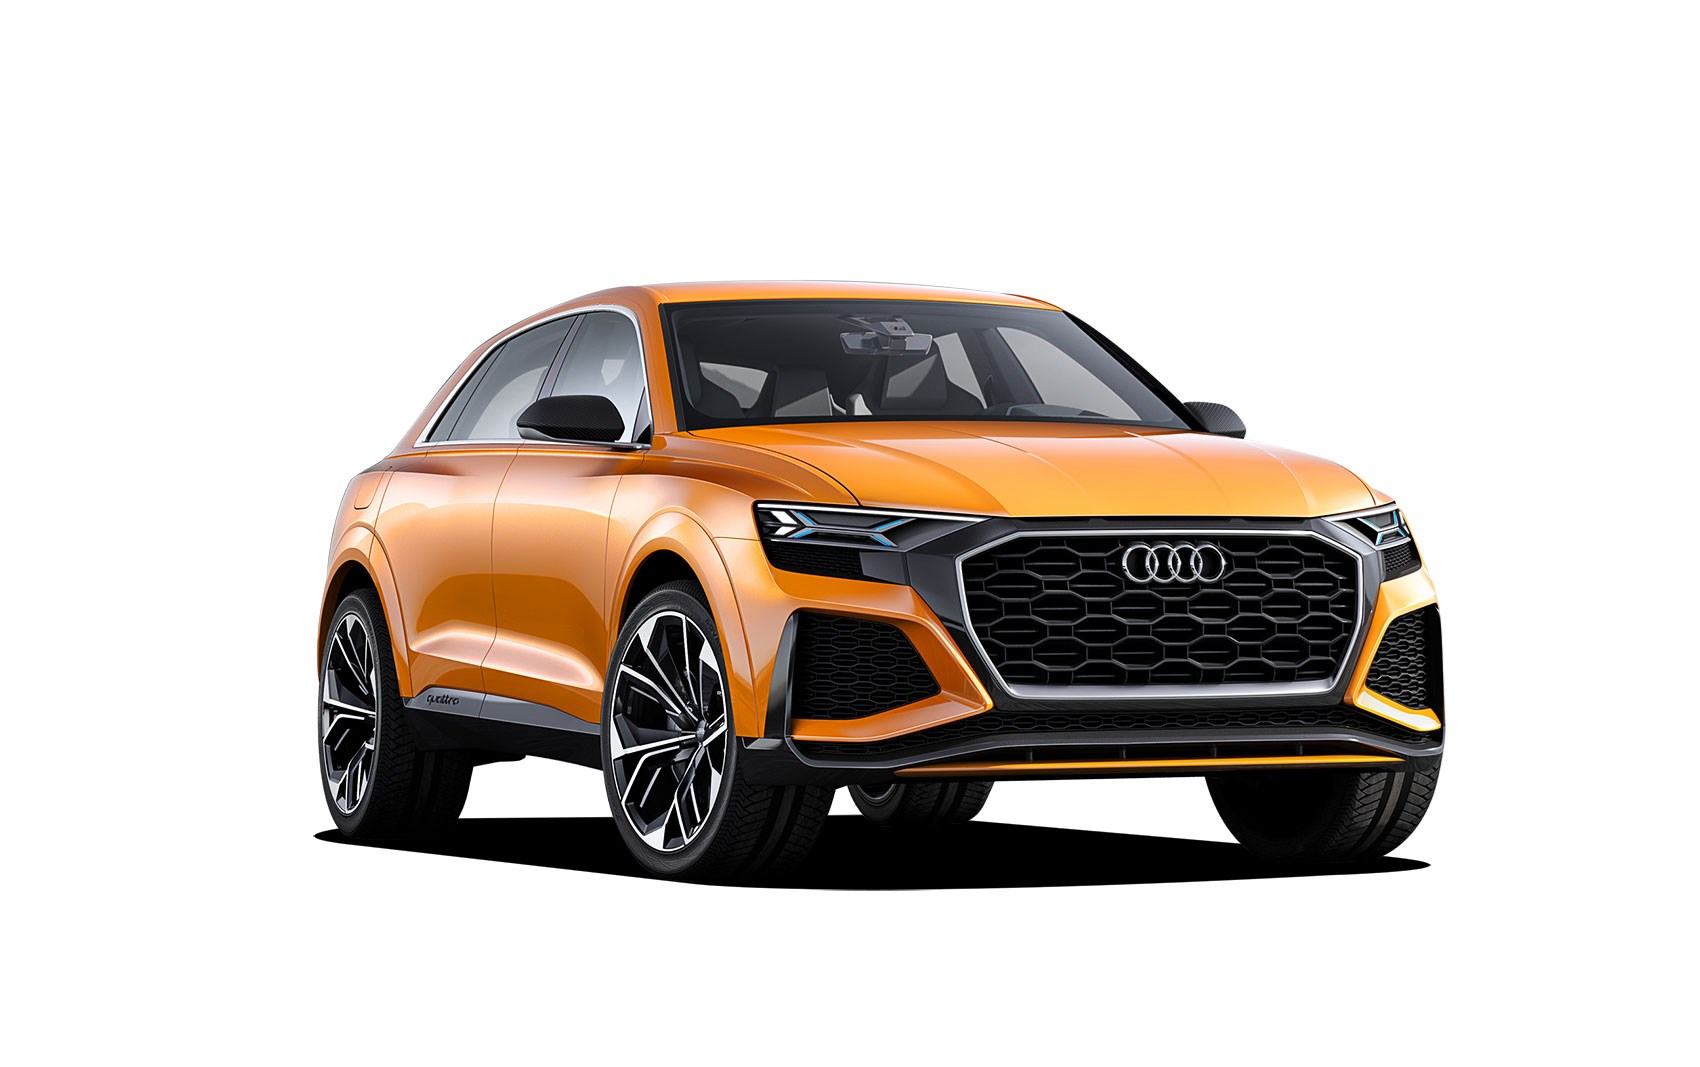 Audi Q8 Car Price In India.2016 Audi Q7: First Look. 2018 ...